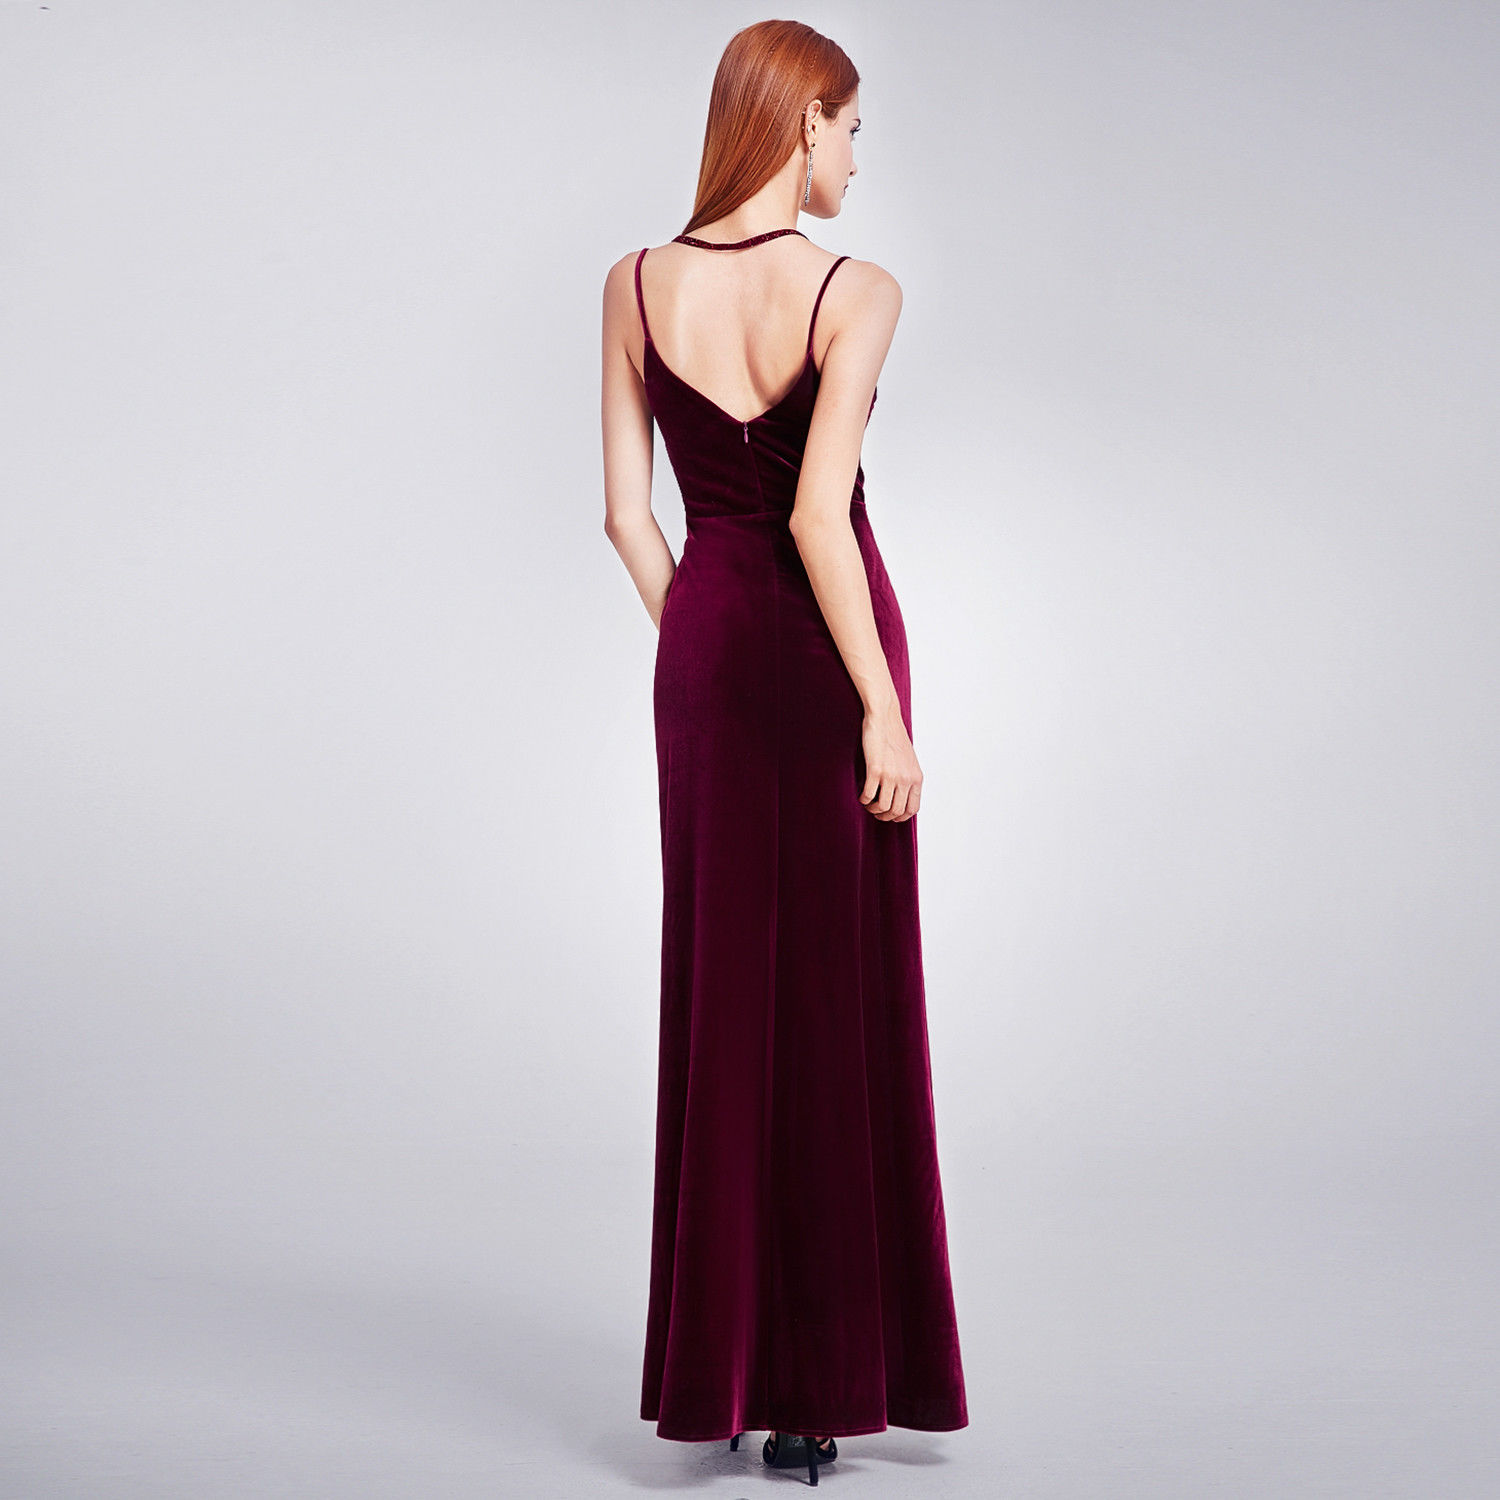 Wedding Dresses: Awesome Long Velvet Gown Slit V-Neck Prom Dress 07181